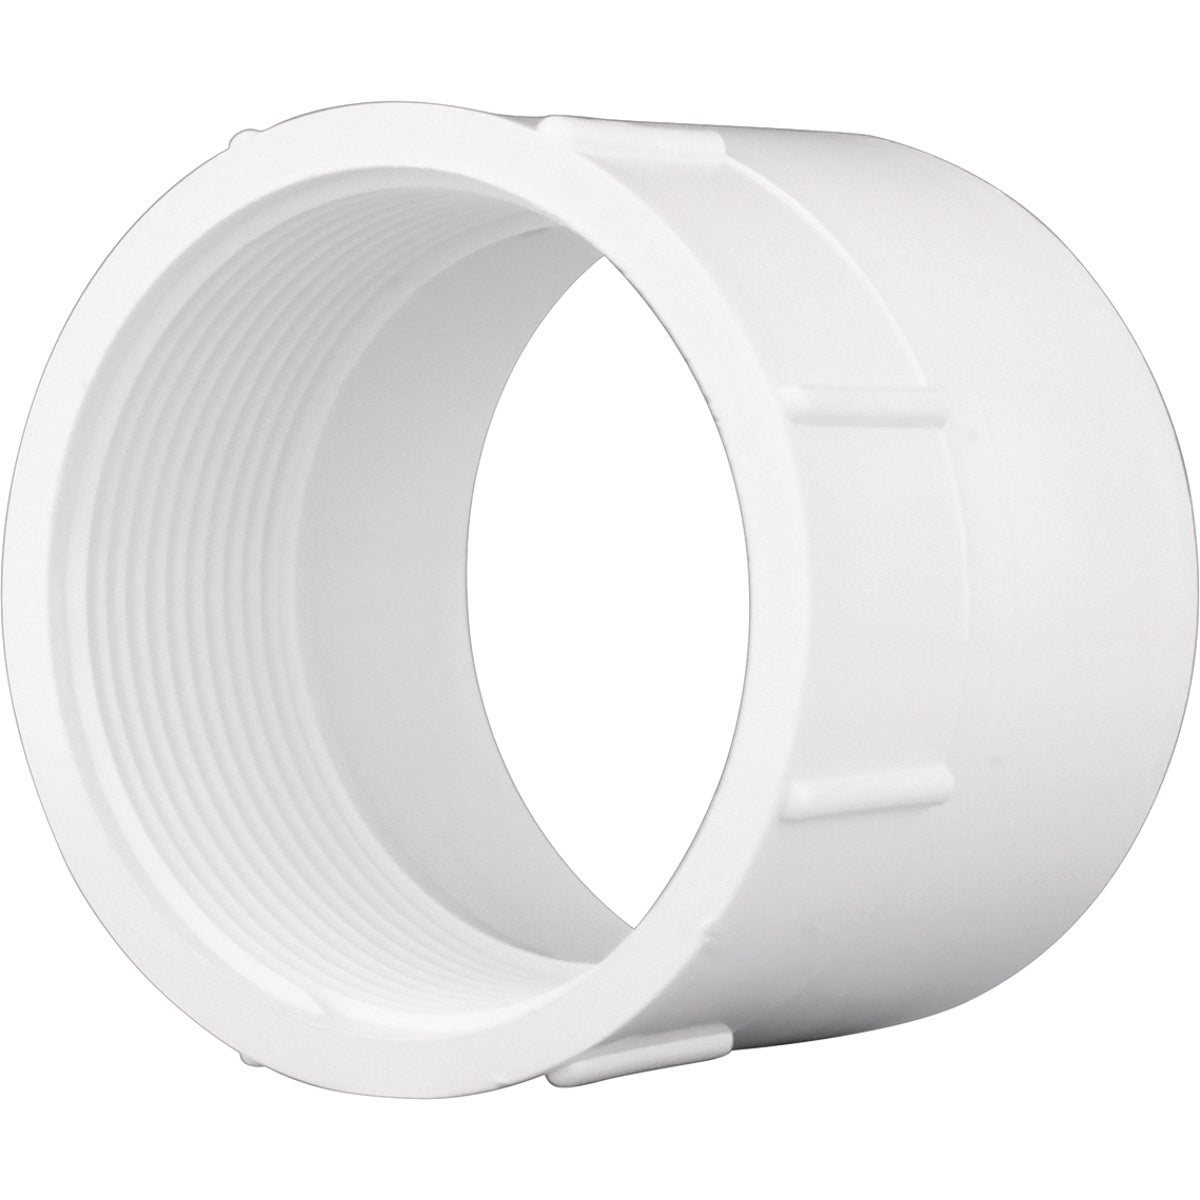 "6"" DWV FEMALE ADAPTER - 70360 by Genova Inc  Pvc Dwv"